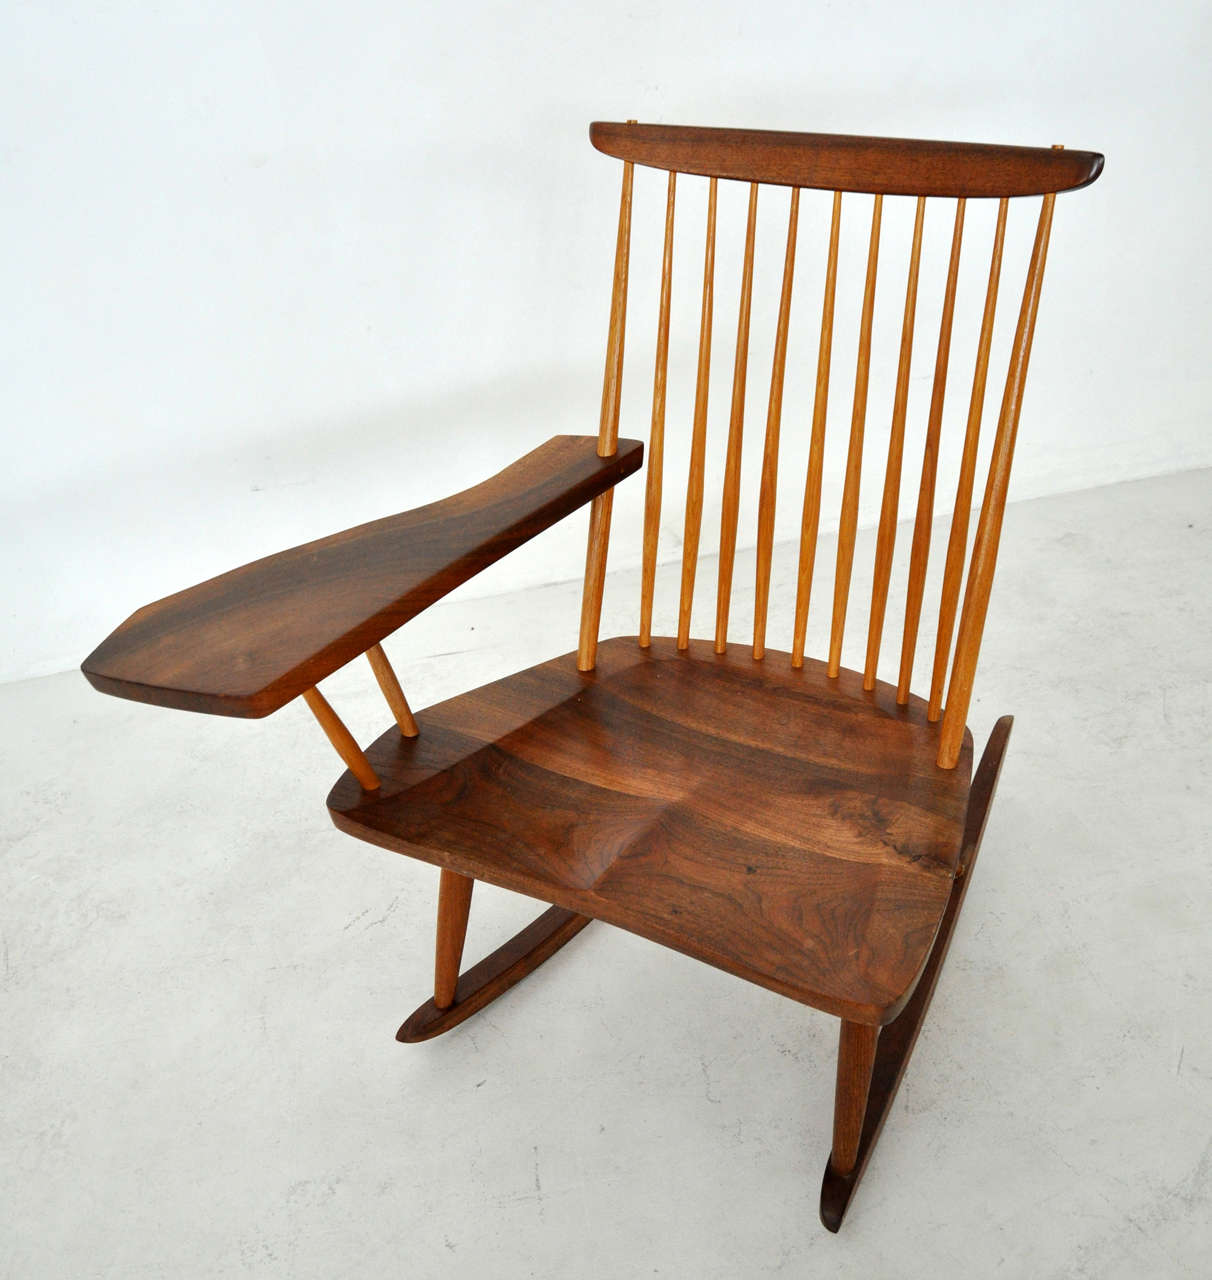 George Nakashima Chairs george nakashima rocking chair for sale at 1stdibs